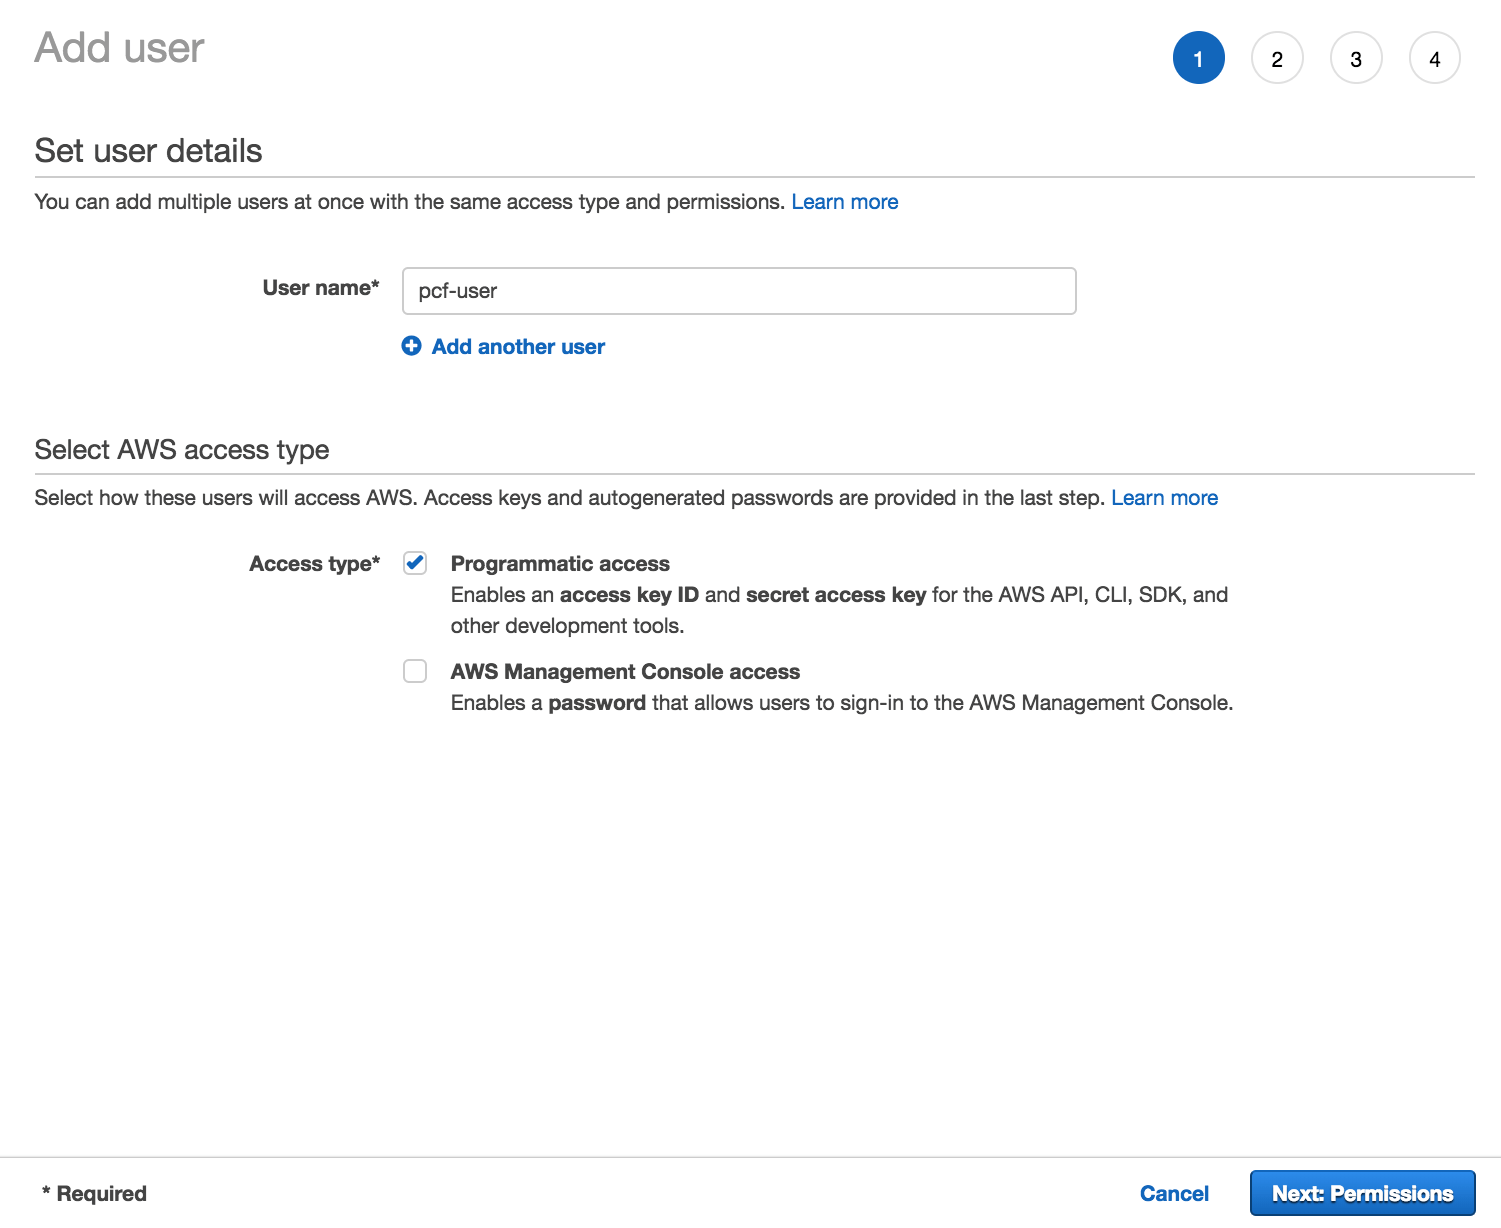 Screenshot of IAM configuration page 1. The page is titled 'Add user'. It has two sections: 'Set User details' and 'Select AWS access type'.